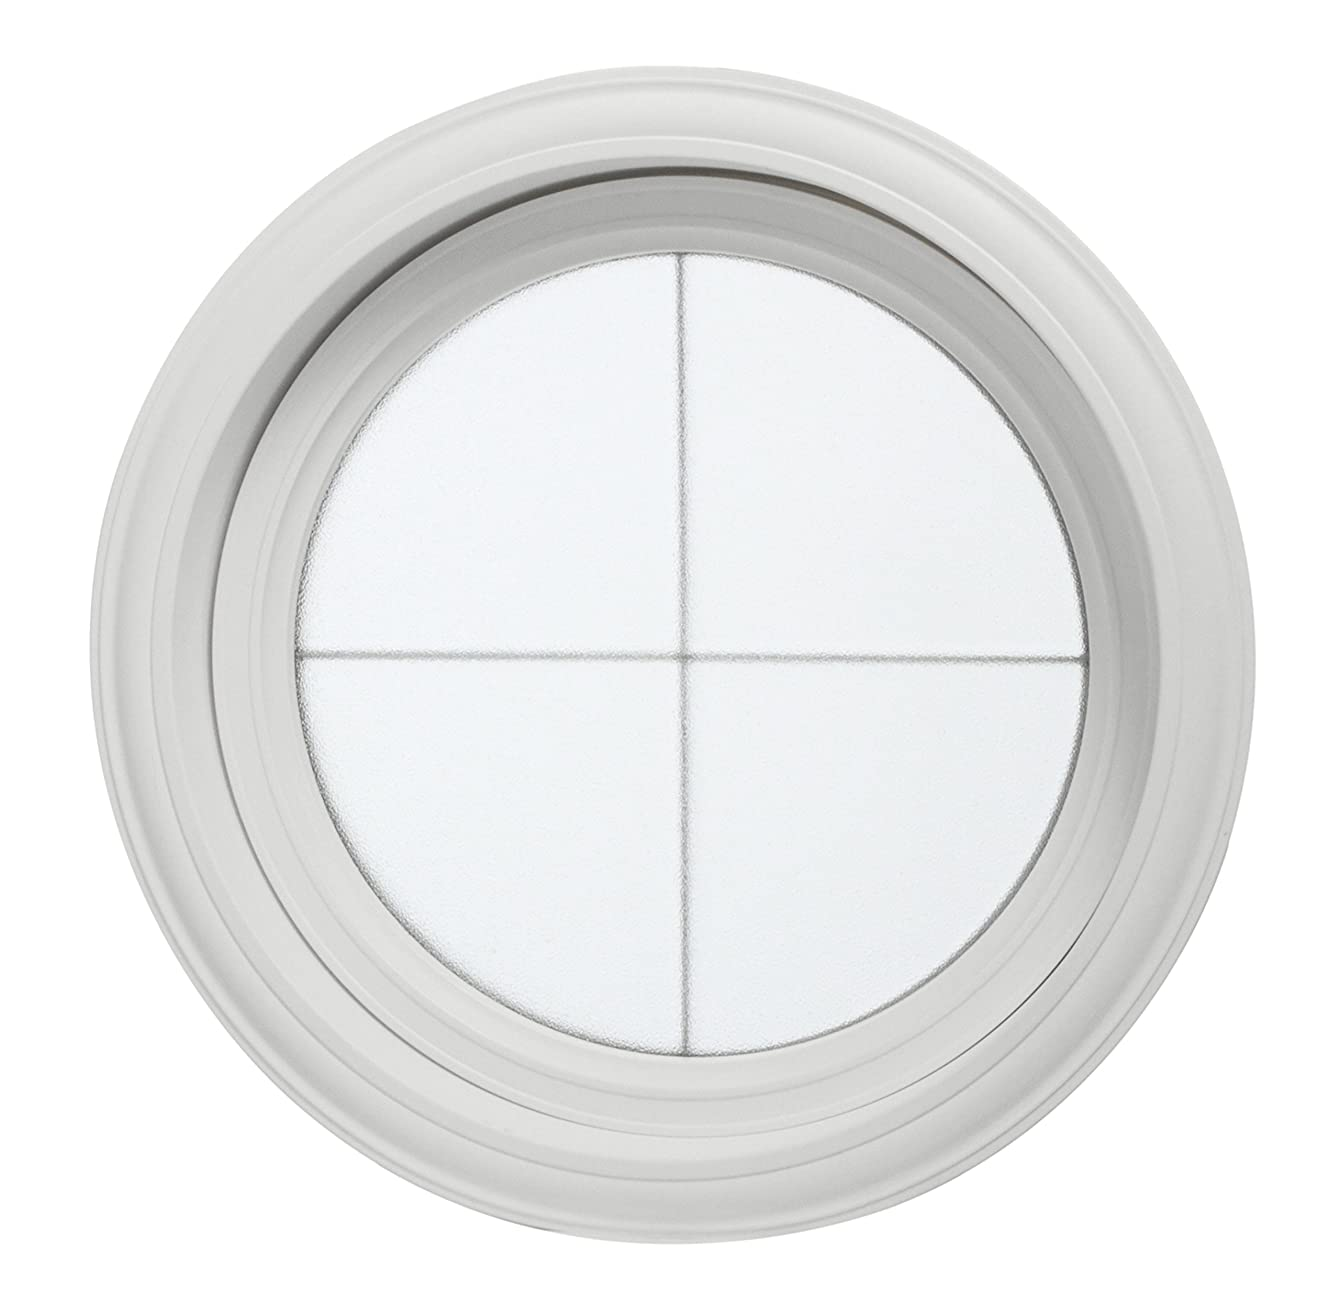 Park Ridge Vinyl Round Fixed Window with Platinum Cross & Obscure Glass, 24.5